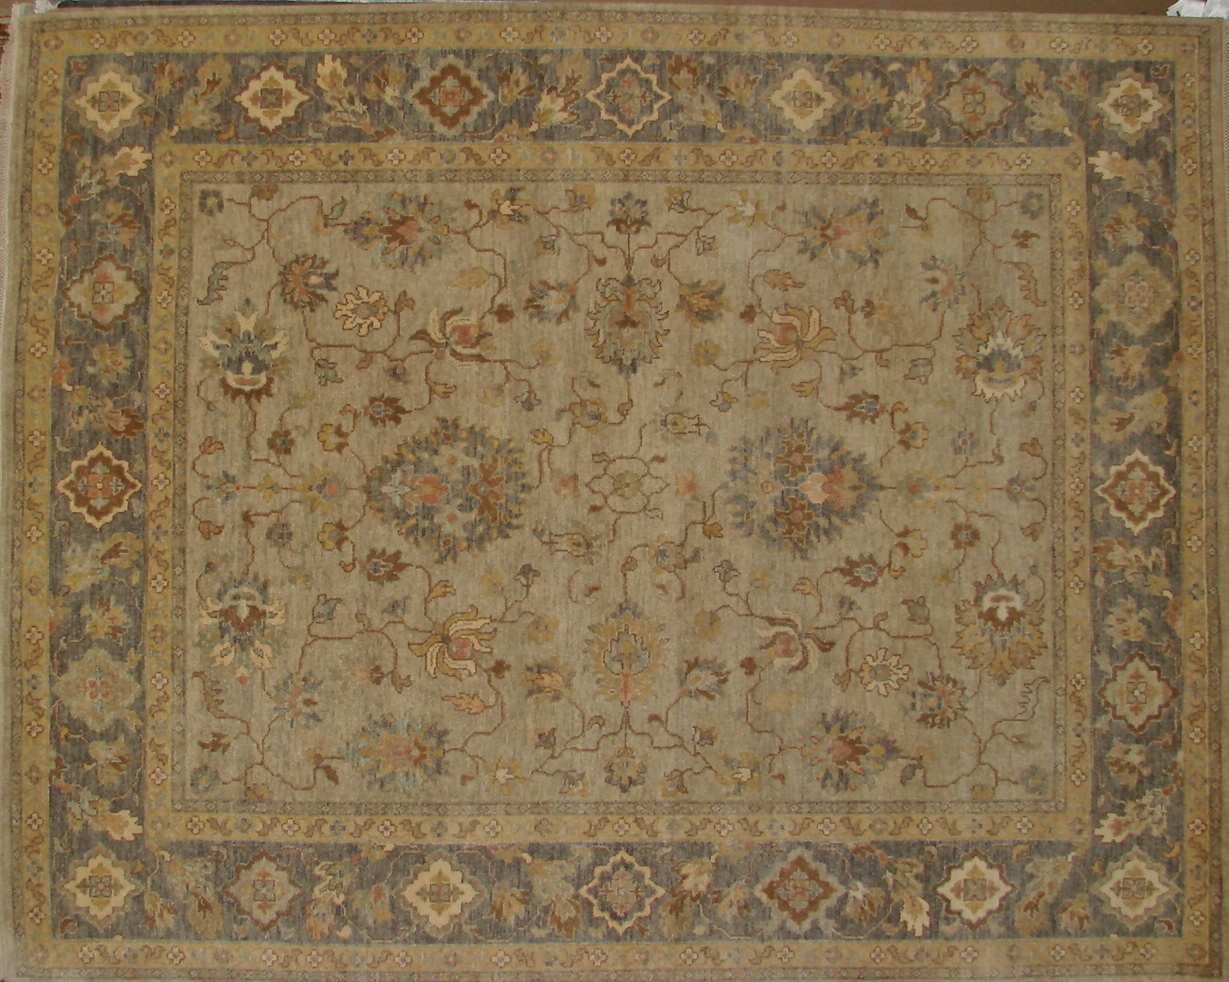 8x10 Traditional Hand Knotted Wool Area Rug - MR17691